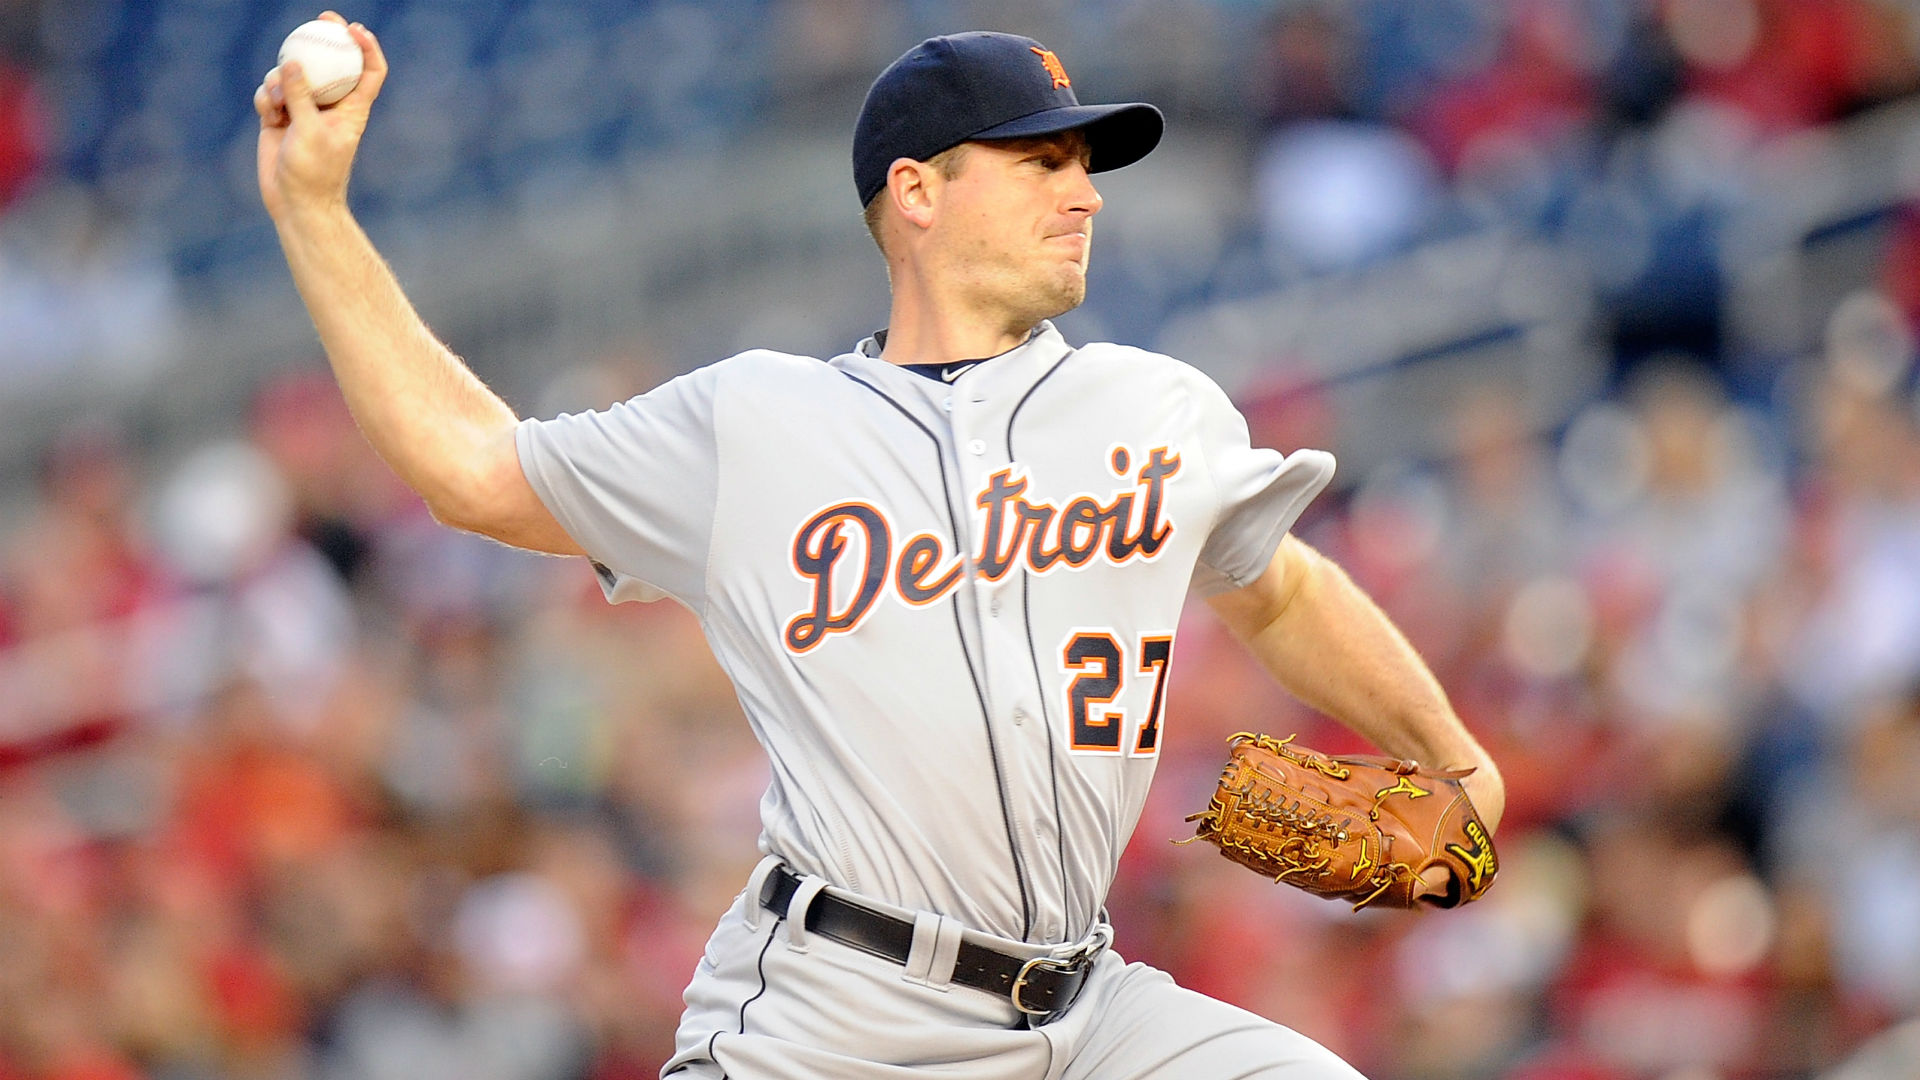 Detroit Tigers pitcher hit in jaw says previous surgery helped minimize damage